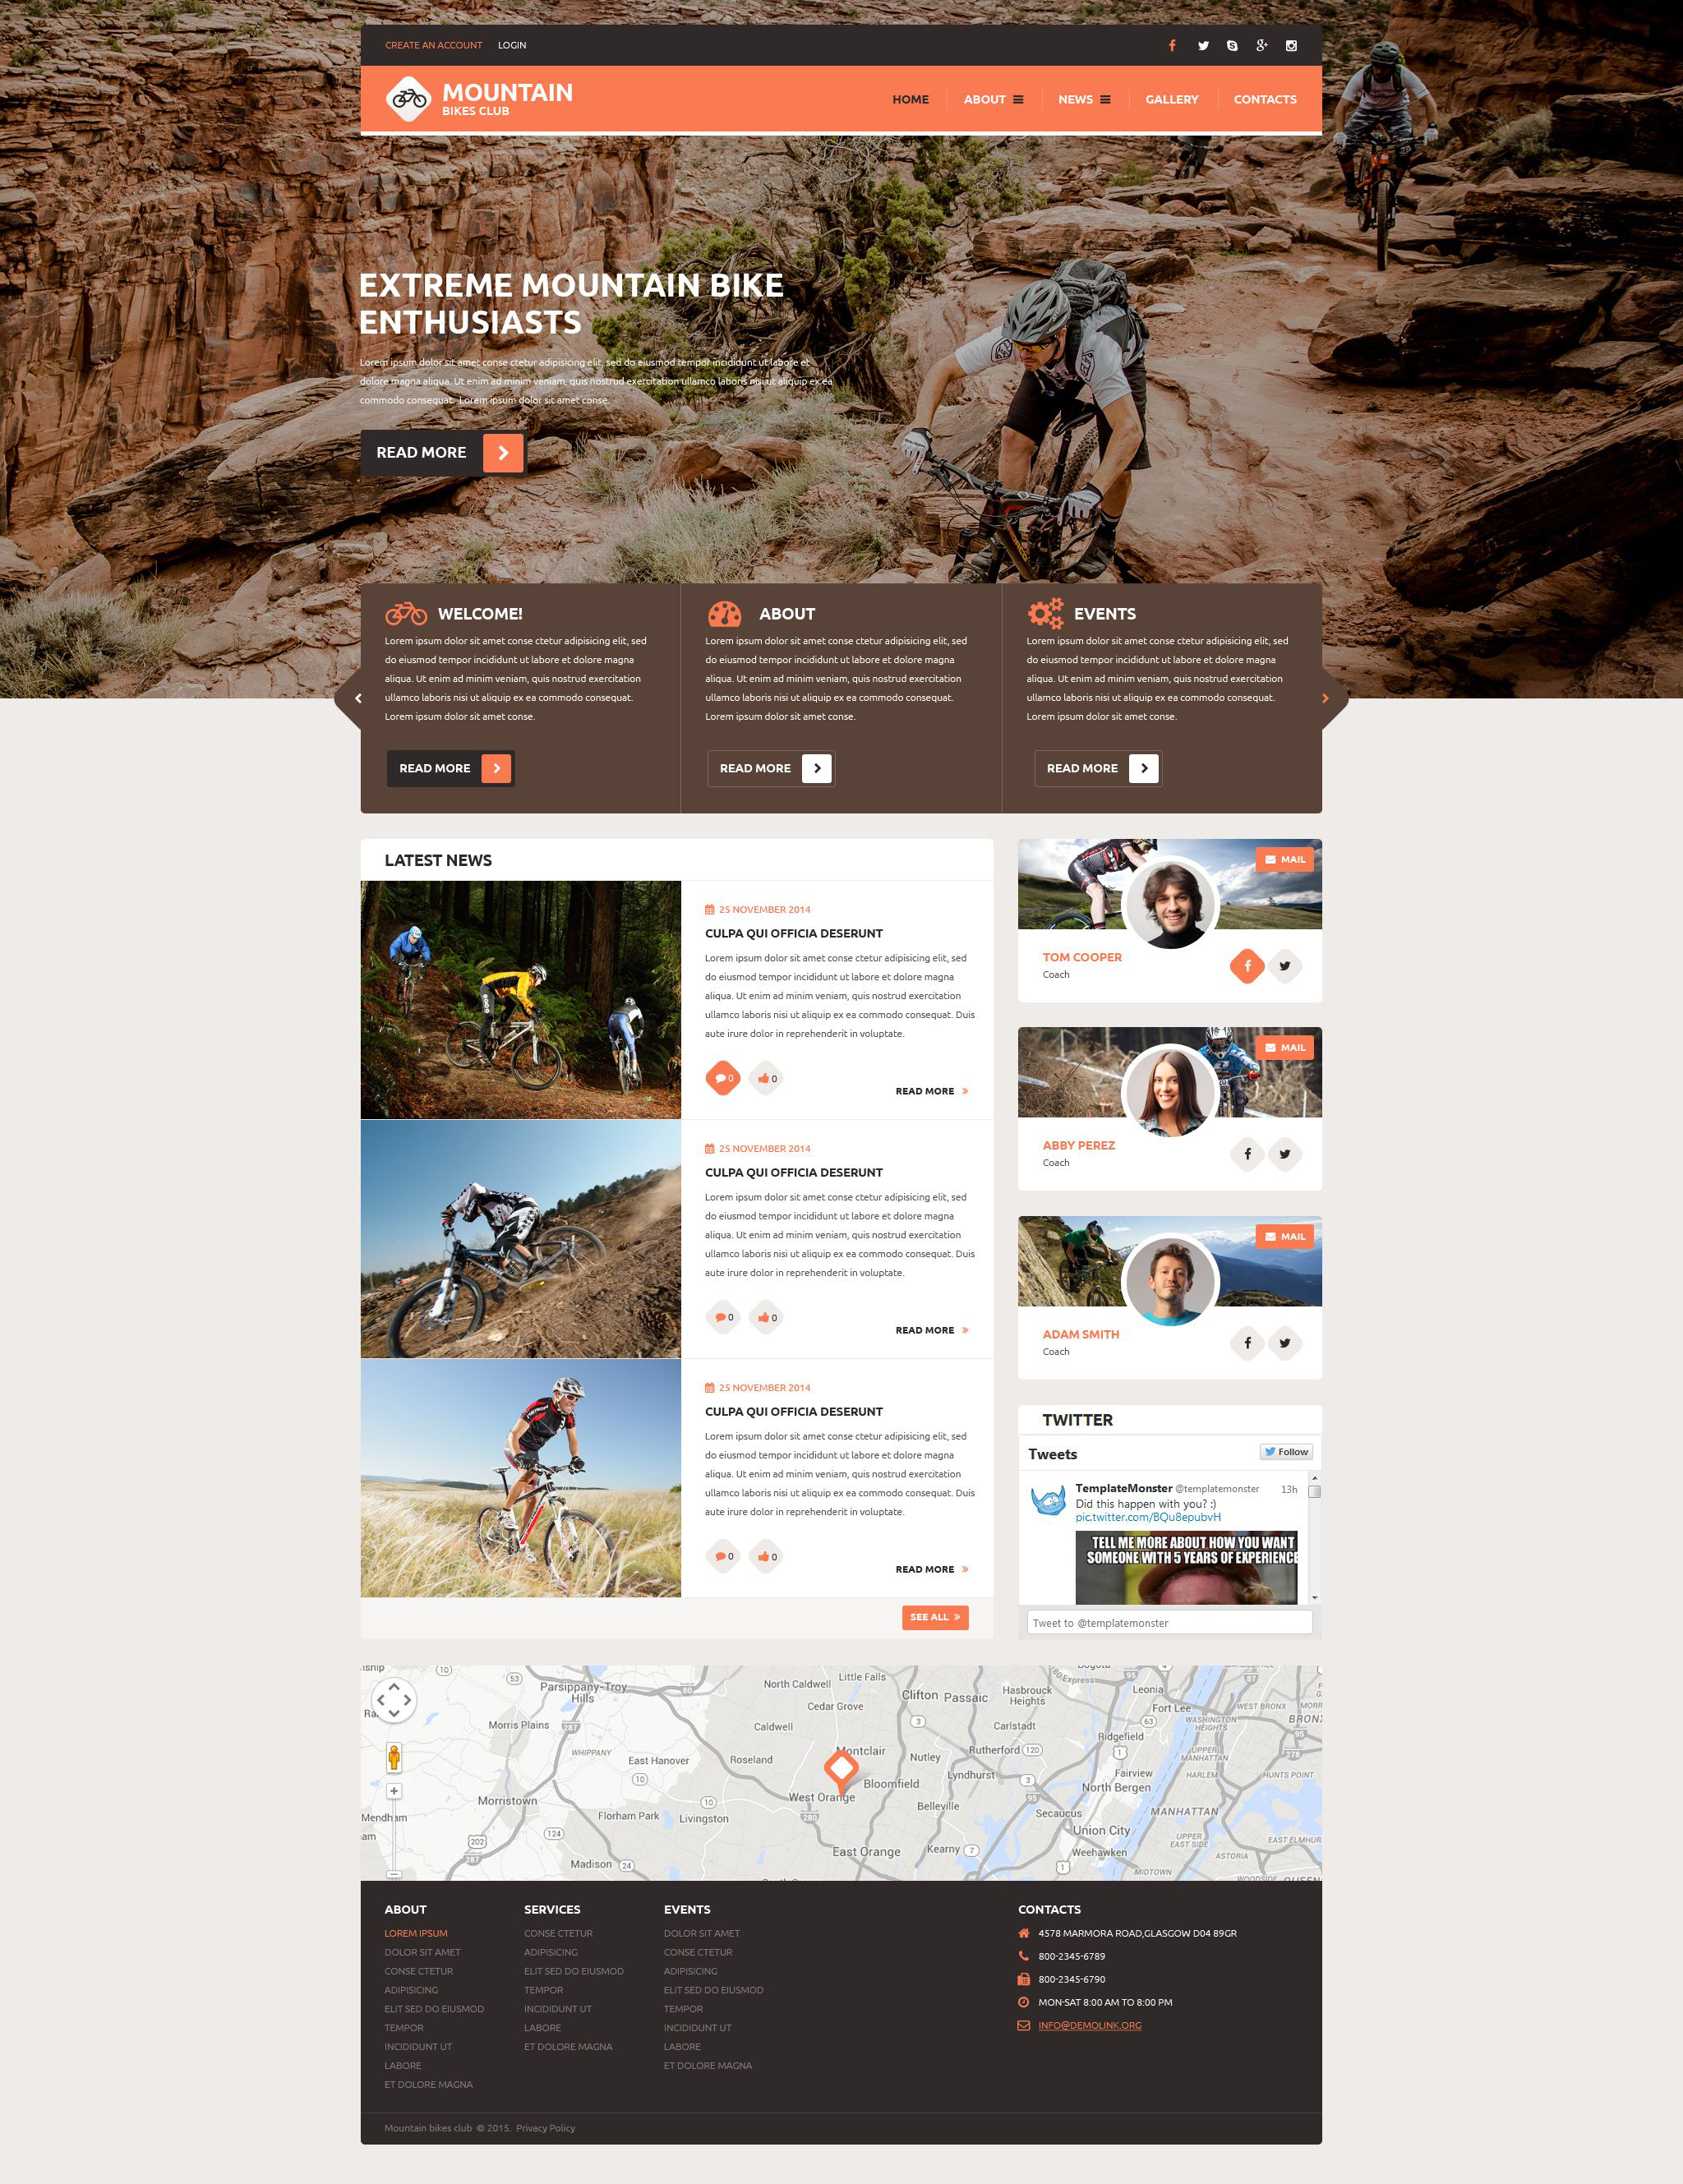 The Mountain Bike Responsive Javascript Animated Design 54564, one of the best website templates of its kind (sport, most popular), also known as mountain bike website template, cycling club website template, cycle website template, racing website template, bike website template, spor website template, bicycle website template, improvement website template, help website template, exhibition solution website template, market website template, research website template, vendor website template, motor website template, price website template, speed website template, driving website template, off-road website template, driver website template, track website template, race website template, urban website template, freeway website template, highway website template, road website template, spare website template, services website template, helmet website template, offers website template, testimonials website template, accessories website template, pedal and related with mountain bike, cycling club, cycle, racing, bike, spor, bicycle, improvement, help, exhibition solution, market, research, vendor, motor, price, speed, driving, off-road, driver, track, race, urban, freeway, highway, road, spare, services, helmet, offers, testimonials, accessories, pedal, etc.